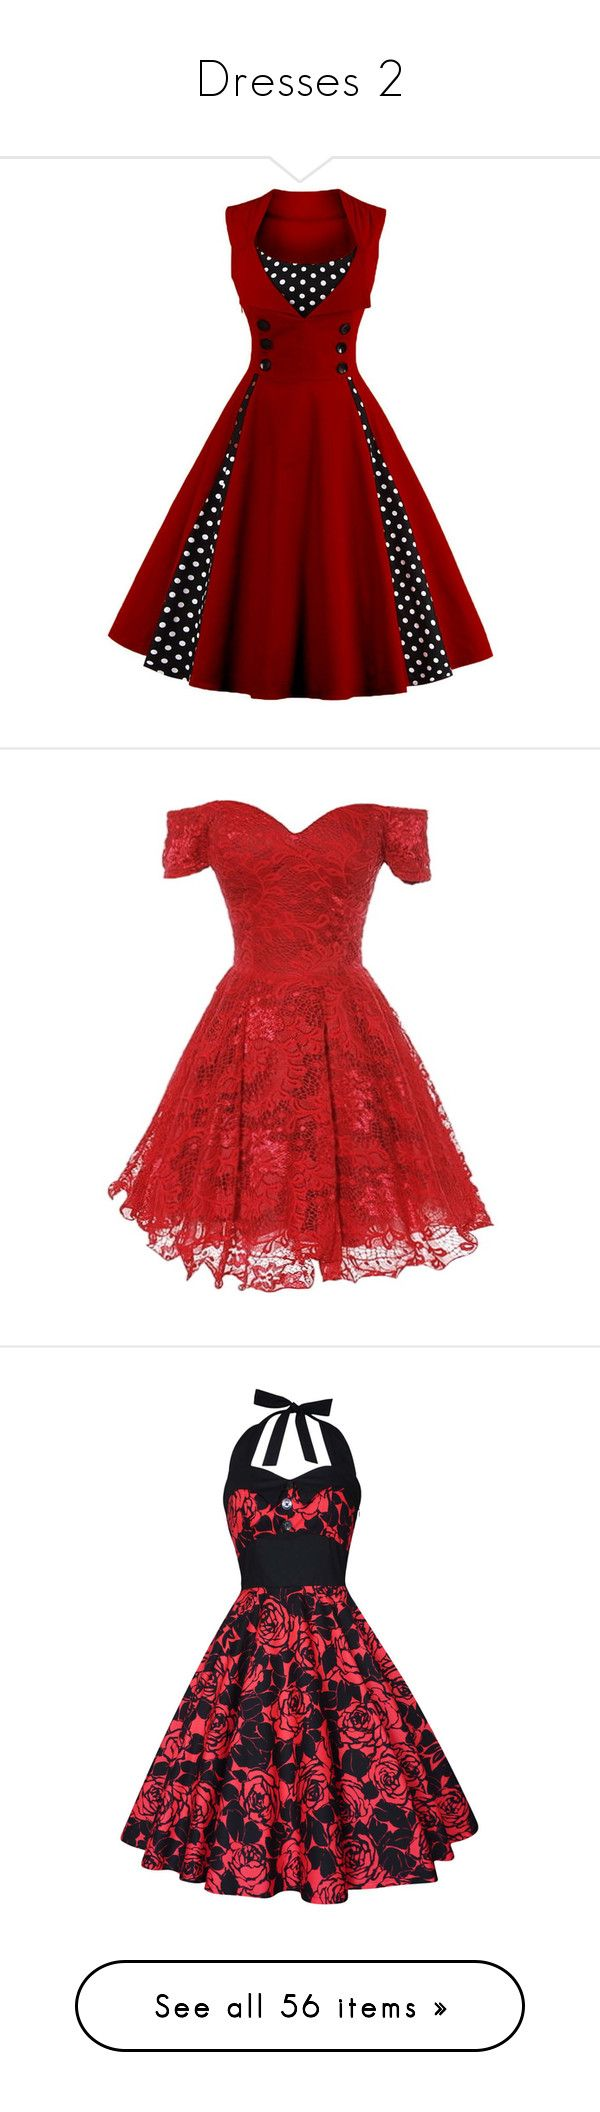 """Dresses 2"" by frankie-and-gee ❤ liked on Polyvore featuring dresses, red corset dress, dot dress, red polka dot corset, red retro dress, polka dot corset, short dresses, vestidos, lace mini dress and red cocktail dress"